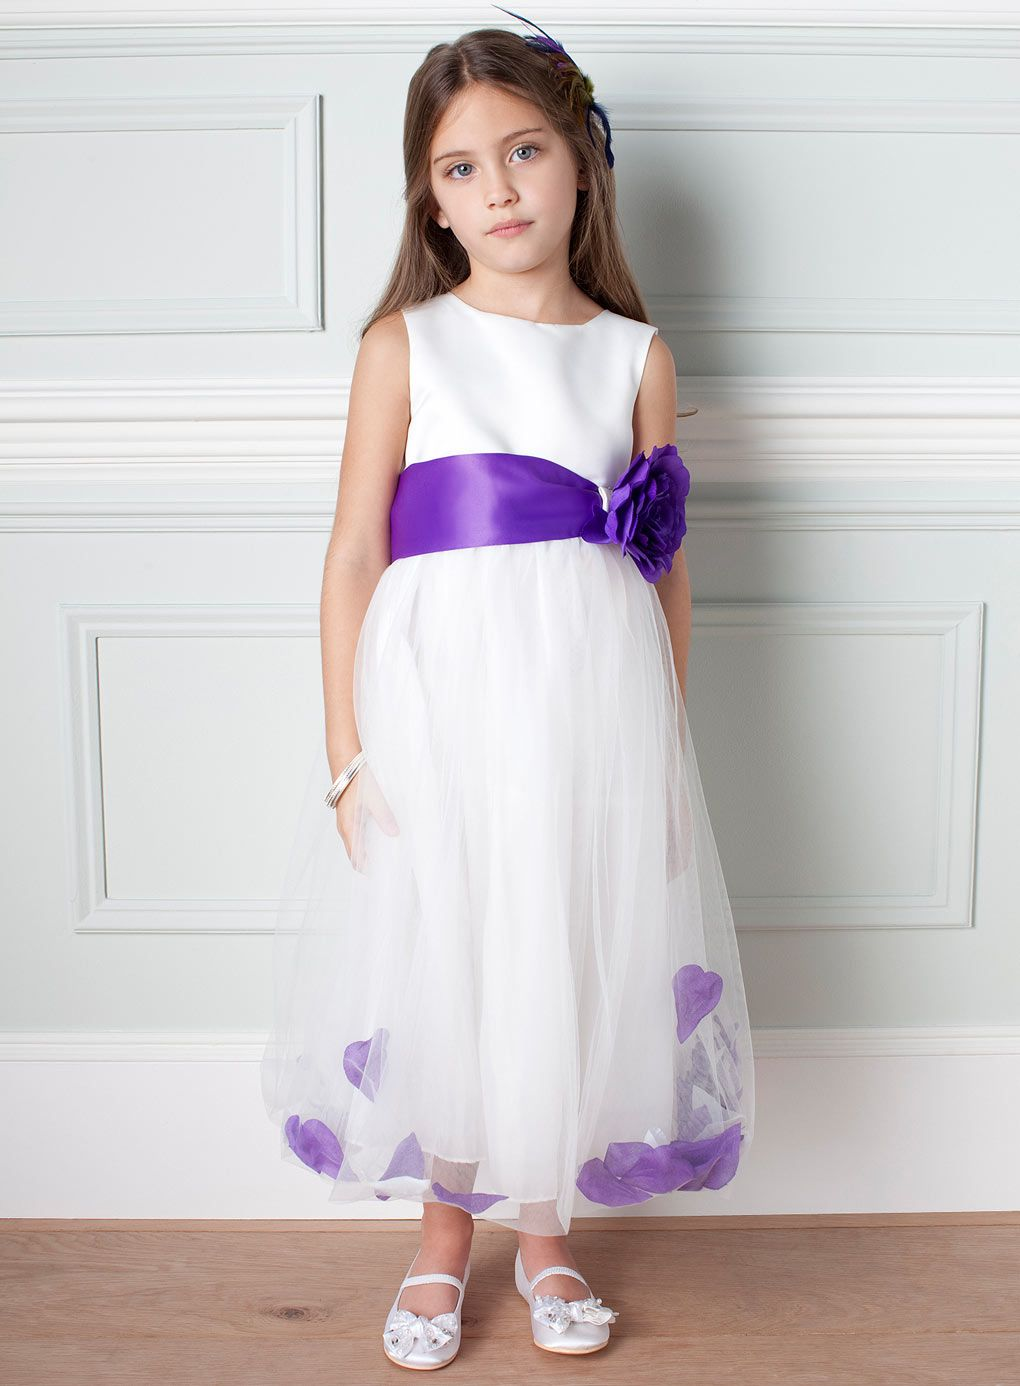 Little Girl Maid of Honor Dresses